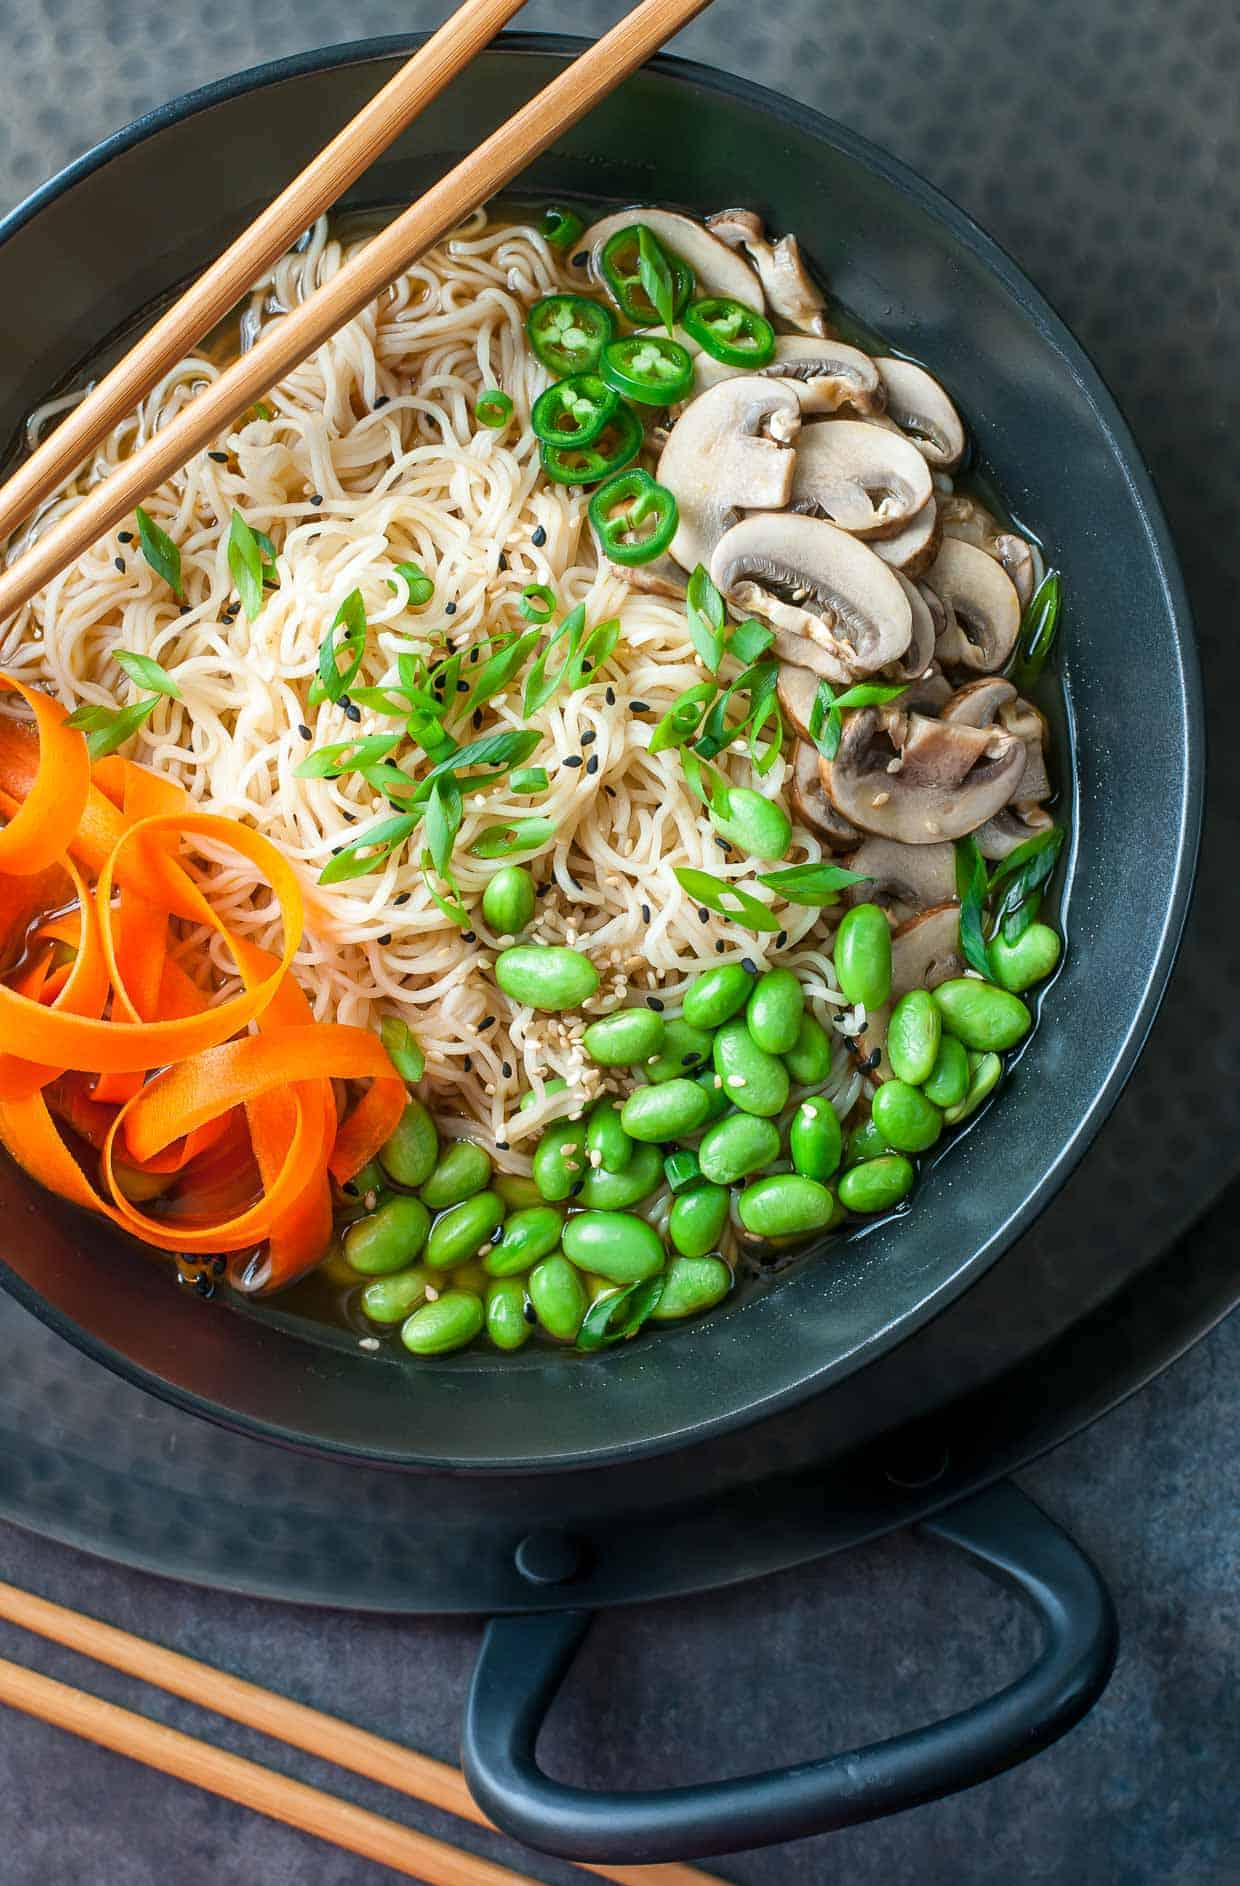 Healthy Weeknight Recipes- mostly 30 minutes are less! Want a healthy, quick weeknight meal? Enjoy this round-up of 30+ vegetarian, mostly vegan, recipes.   www.delishknowledge.com